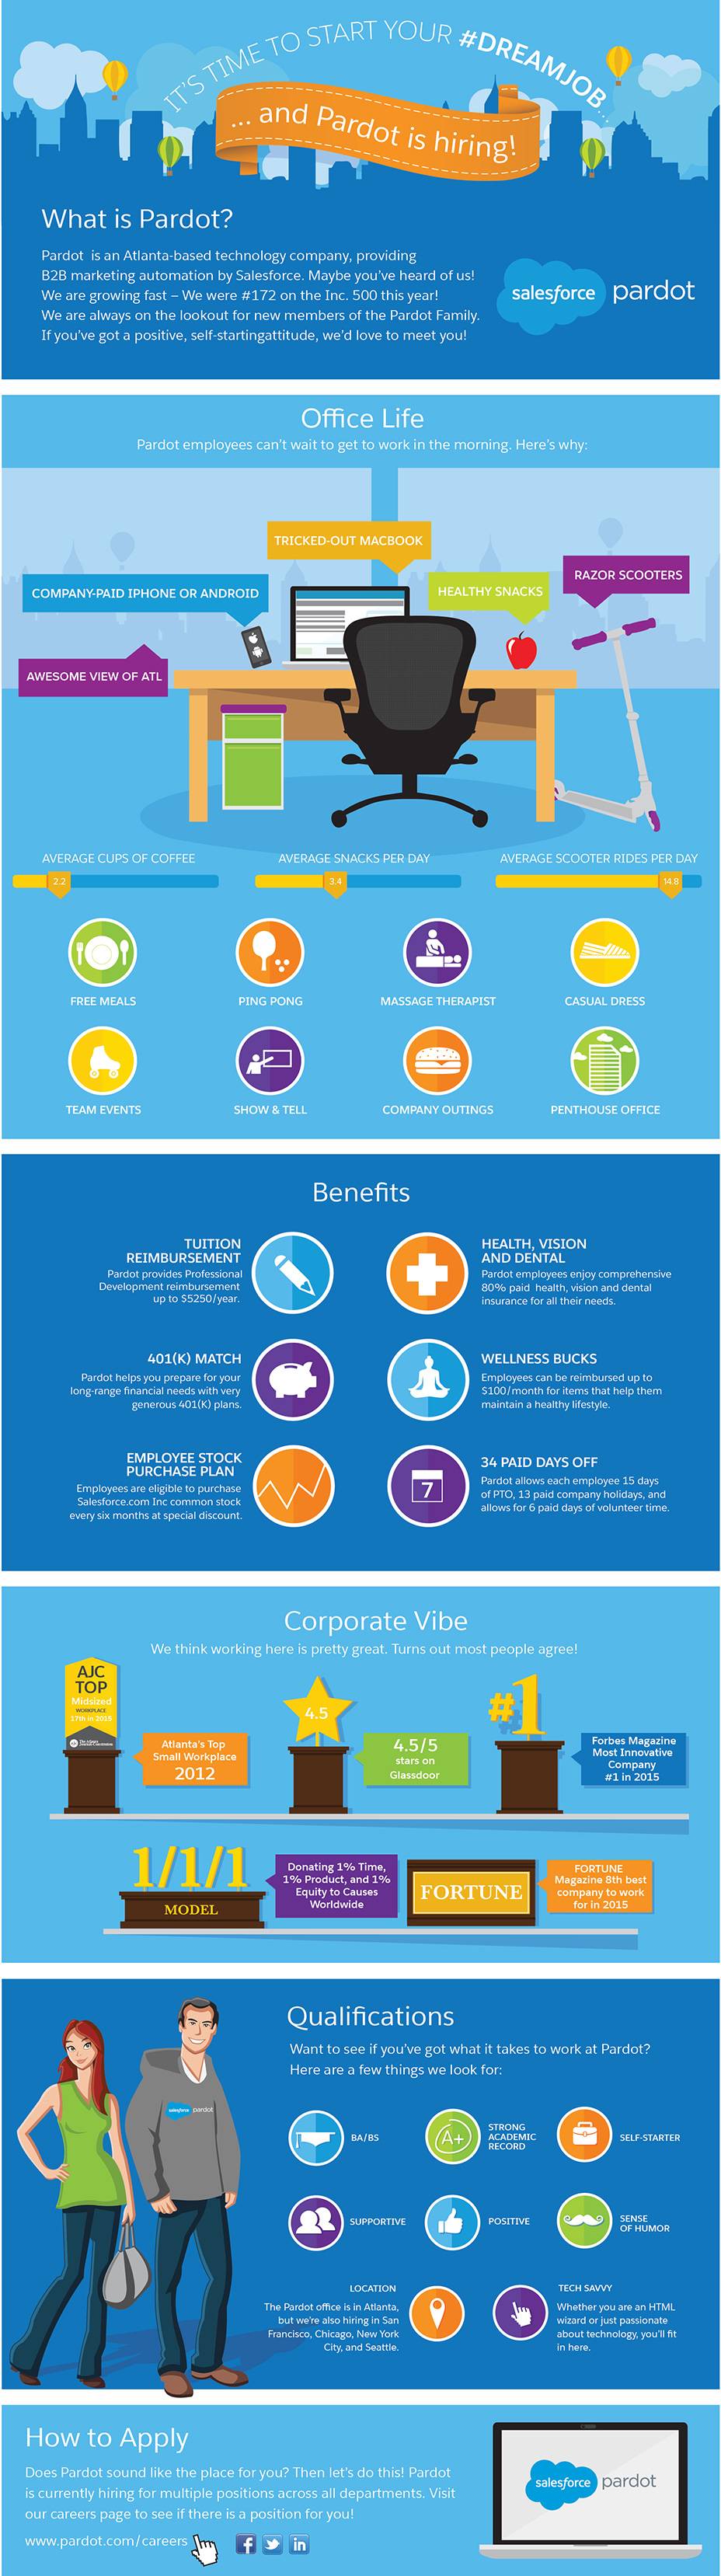 Pardot Recruitment Infographic